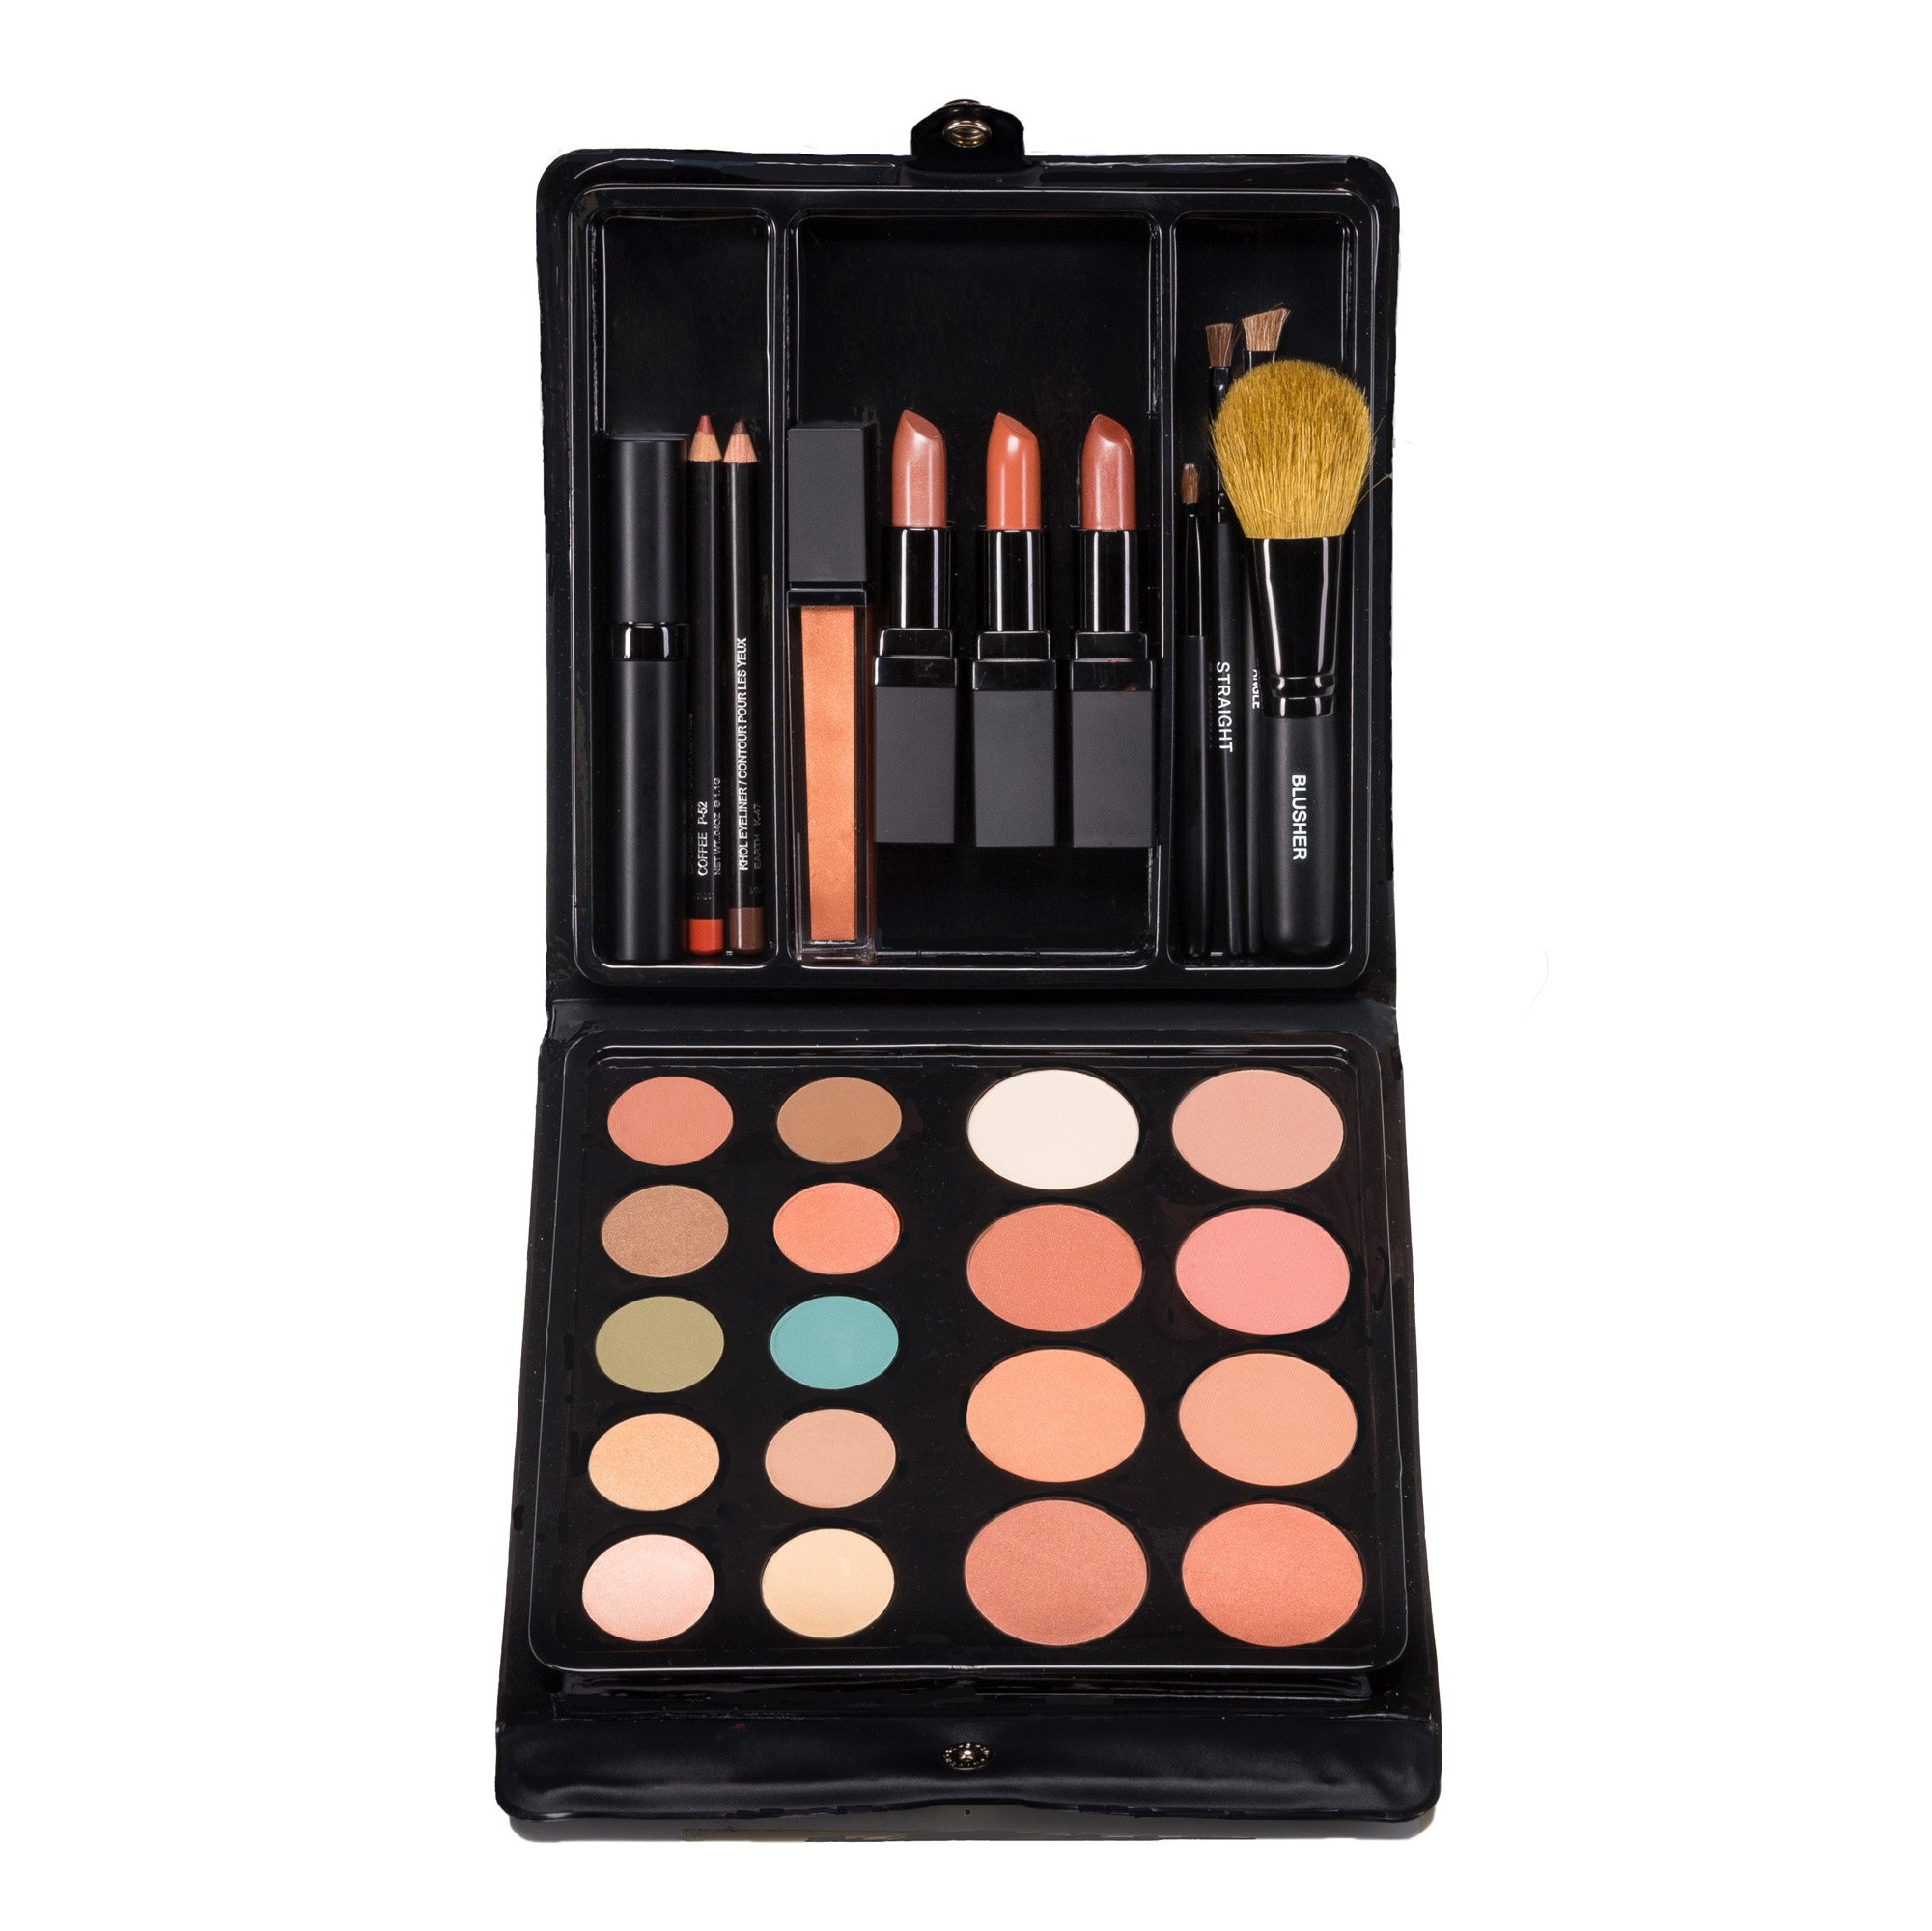 Ultimate Makeup Kit for Beginner to Pro: Shades for Golden Brown, Deep Honey Blonde & Redheads: Eyeshadow, Blush, Lipstick, Lip Pencil, Lip Gloss, Mascara. By Jill Kirsh Color, Hollywood's Guru of Hue